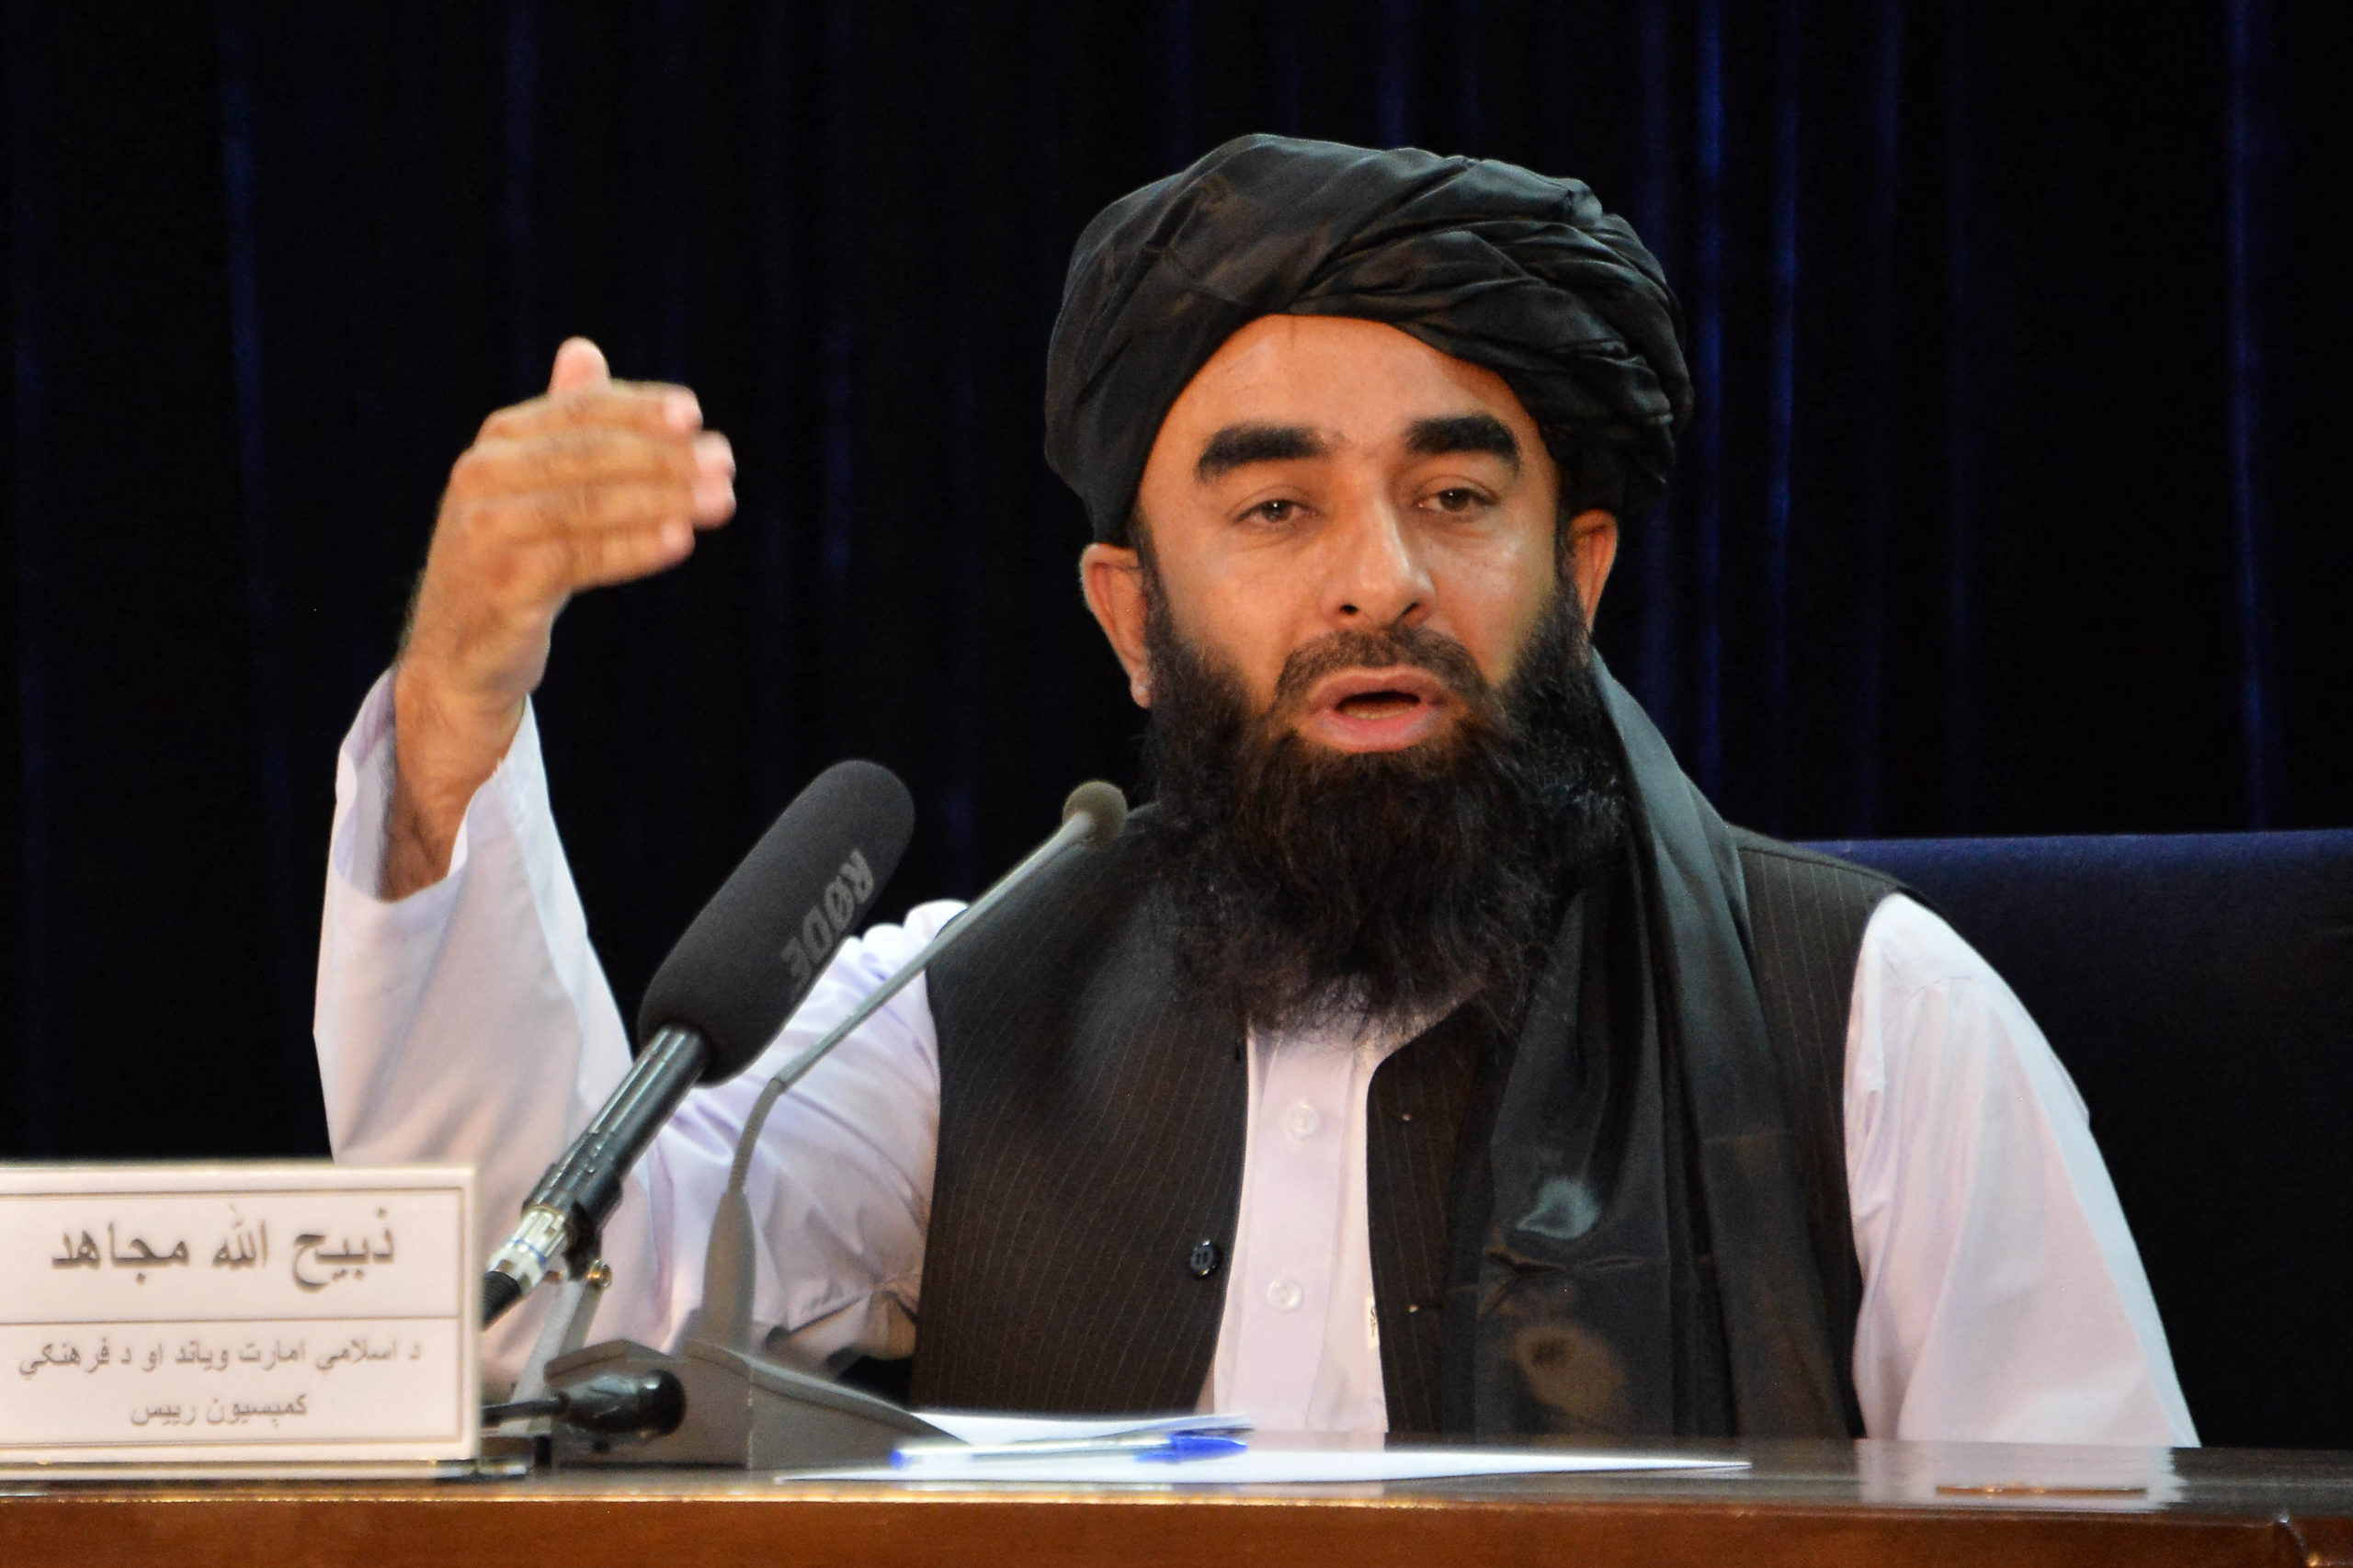 Taliban spokesperson Zabihullah Mujahid gestures as he speaks during a press conference in Kabul on August 24, 2021 after the Taliban stunning takeover of Afghanistan. (Photo by Hoshang Hashimi / AFP) (Photo by HOSHANG HASHIMI/AFP via Getty Images)